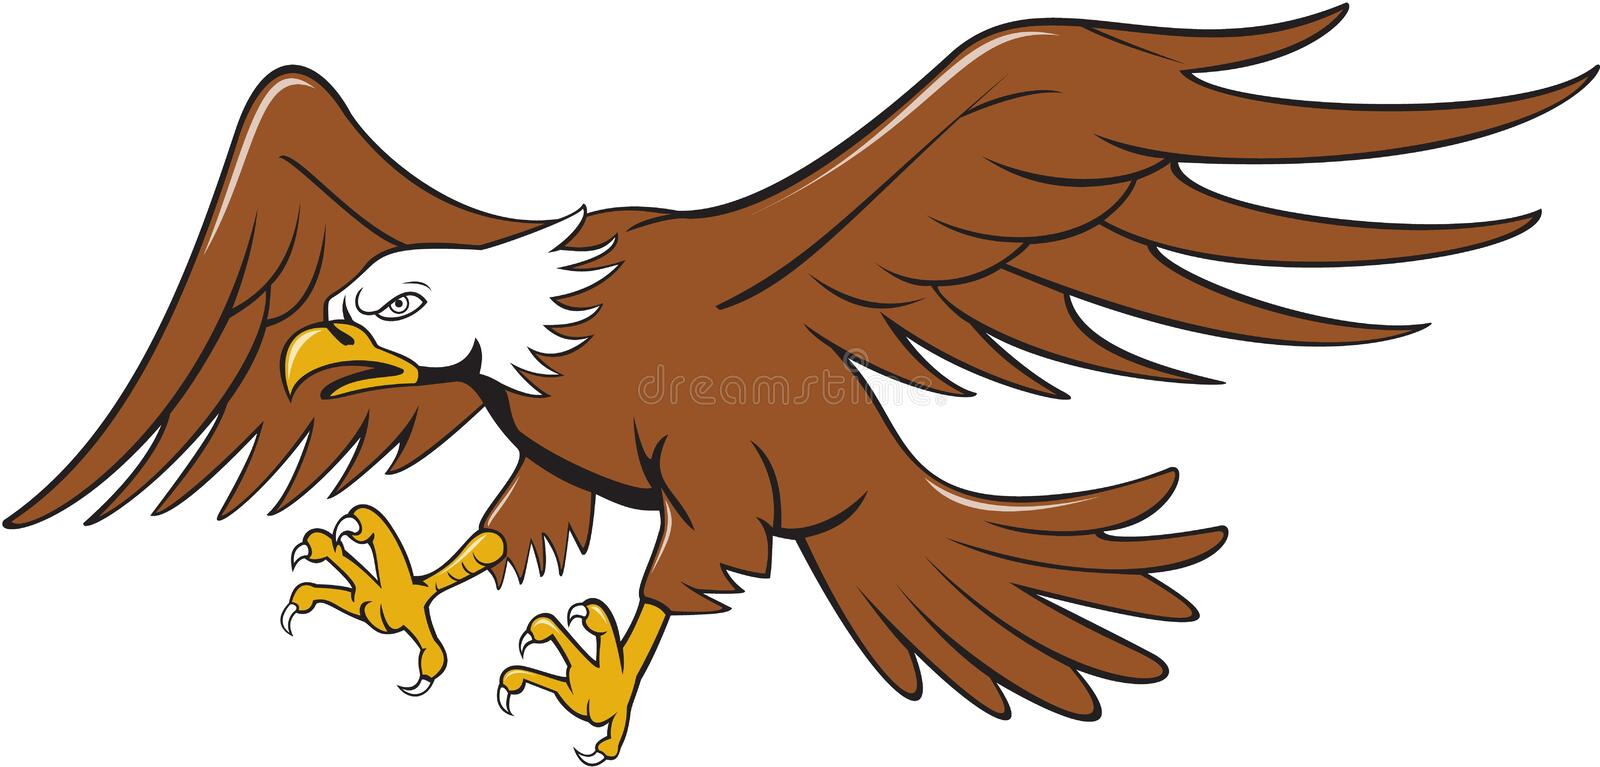 American Bald Eagle Swooping Cartoon royalty free illustration